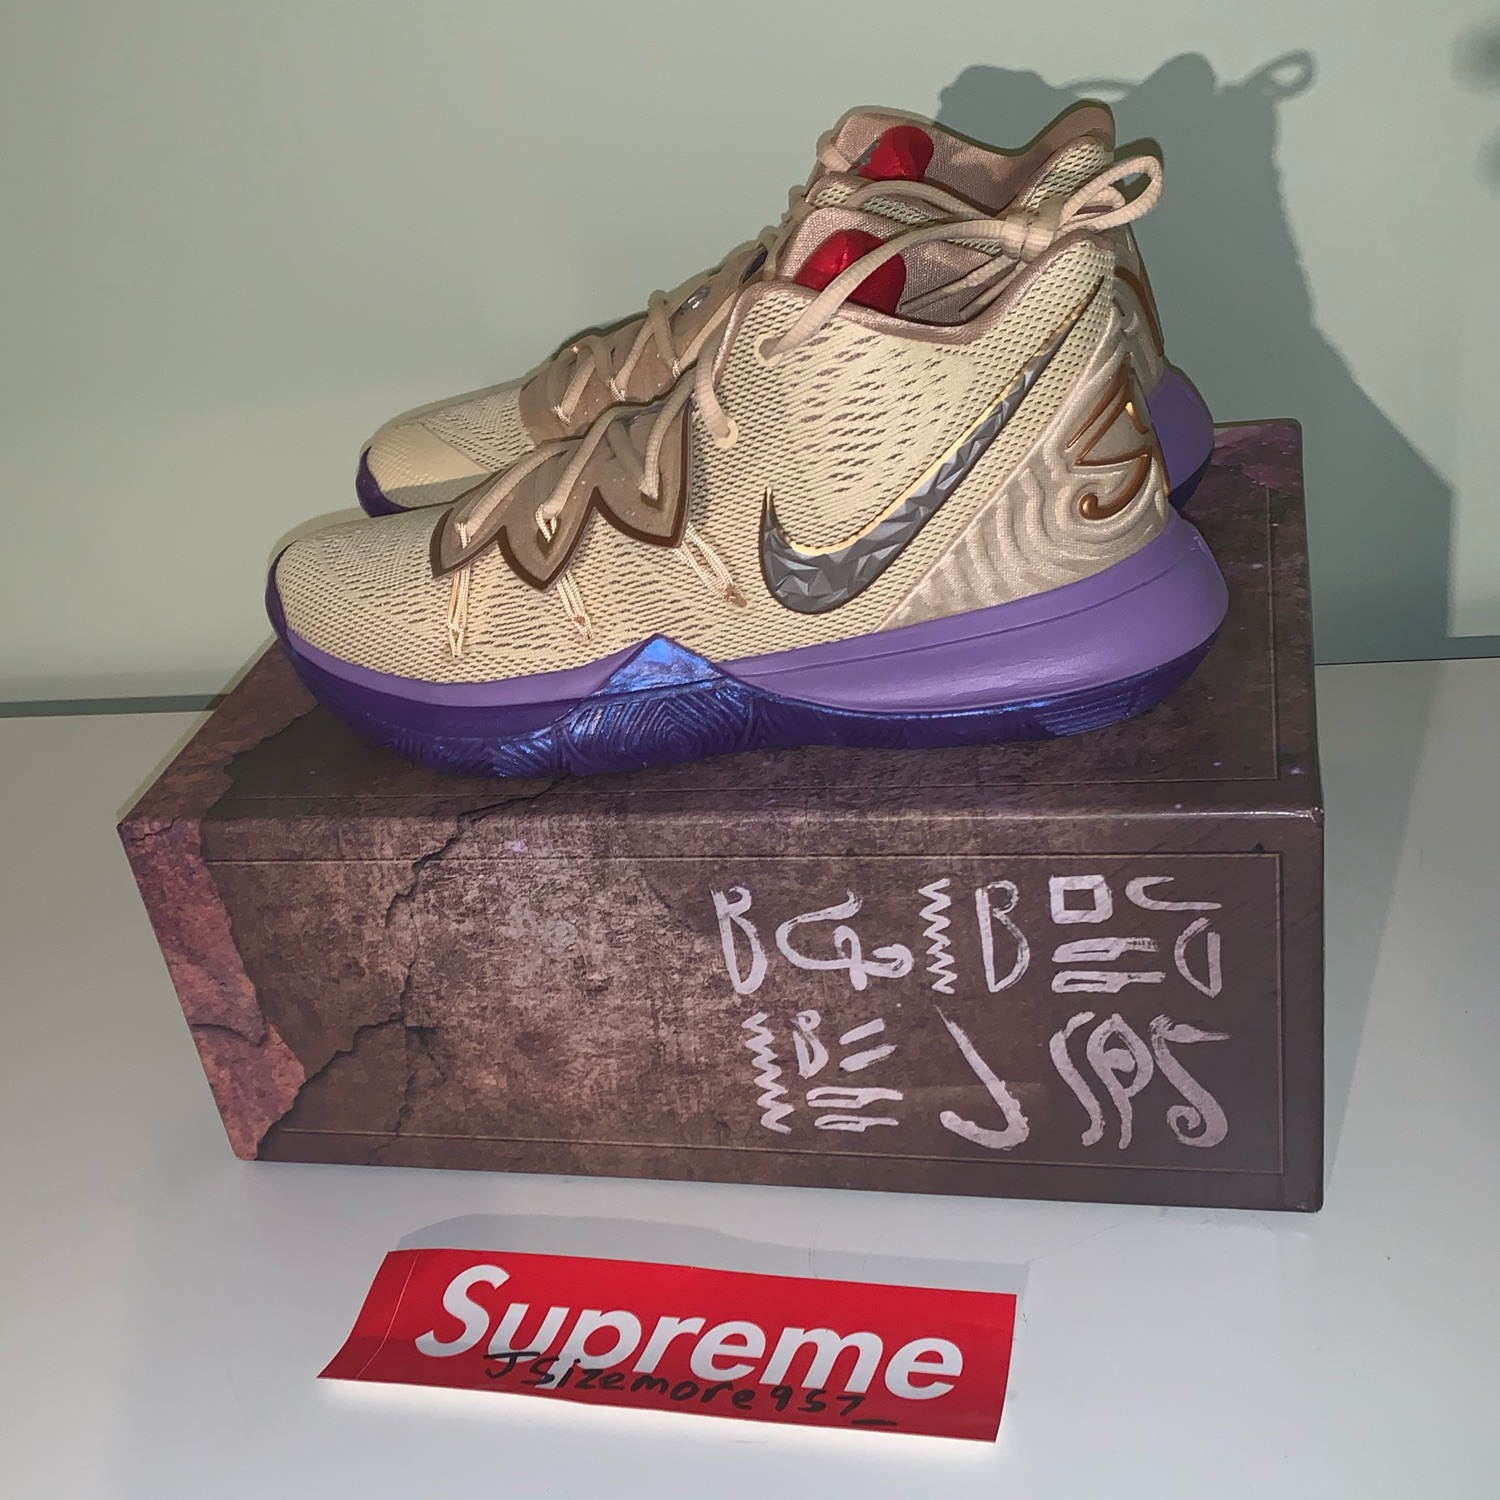 Concepts X Nike Kyrie 5 'Ikhet' (With